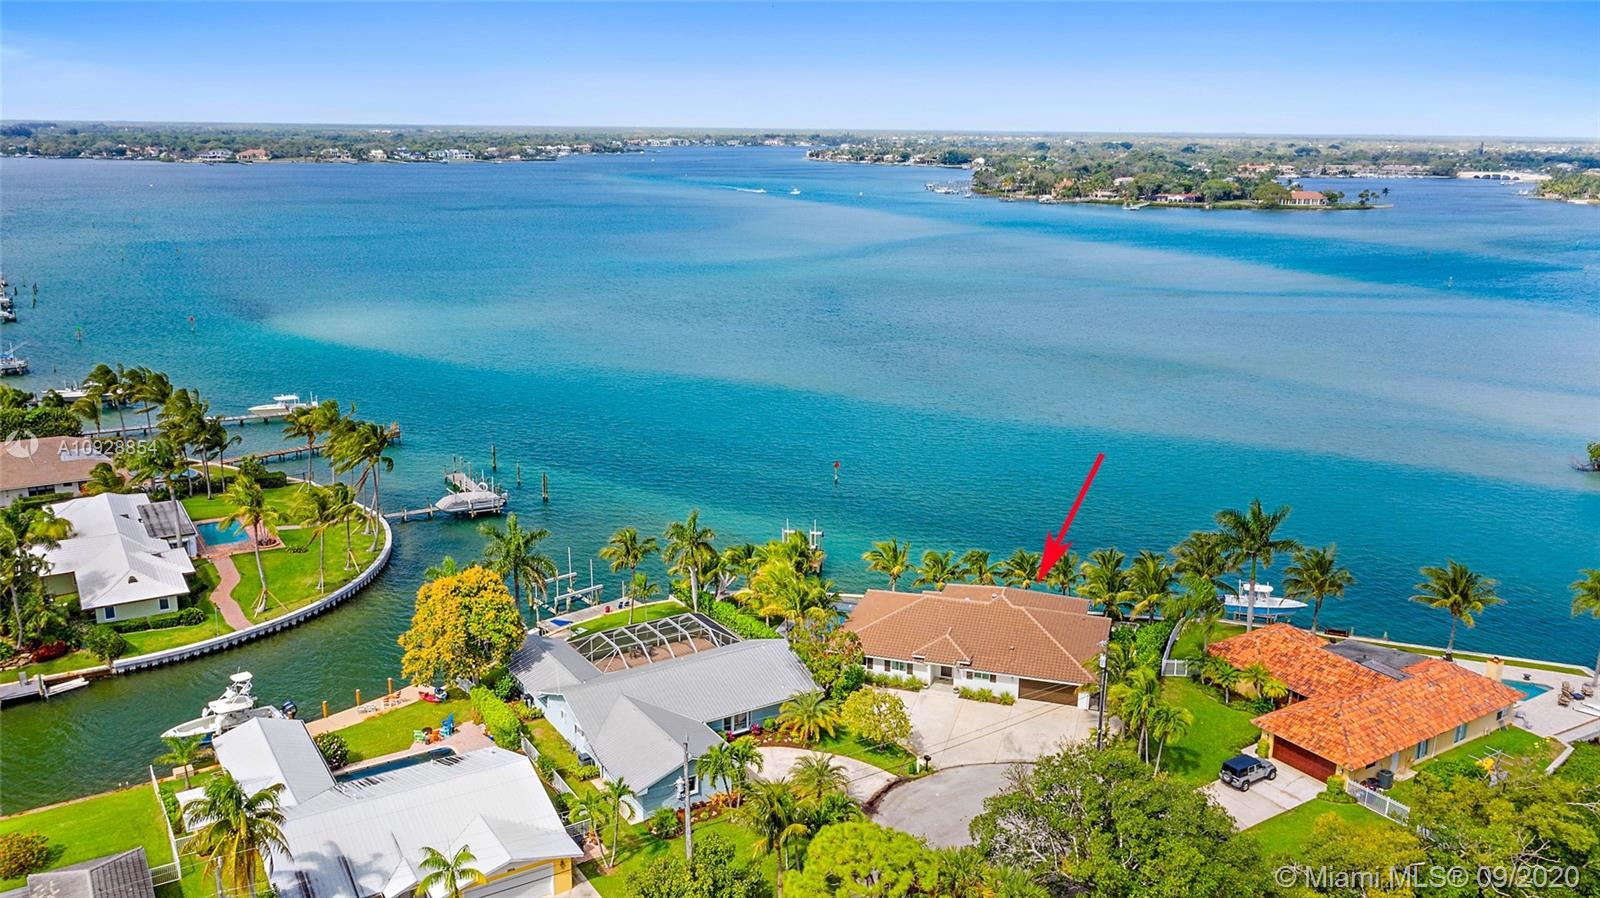 STUNNING - WATERFRONT POOL HOME Situated on a Premium Point Lot in the Heart of Jupiter. This Comple